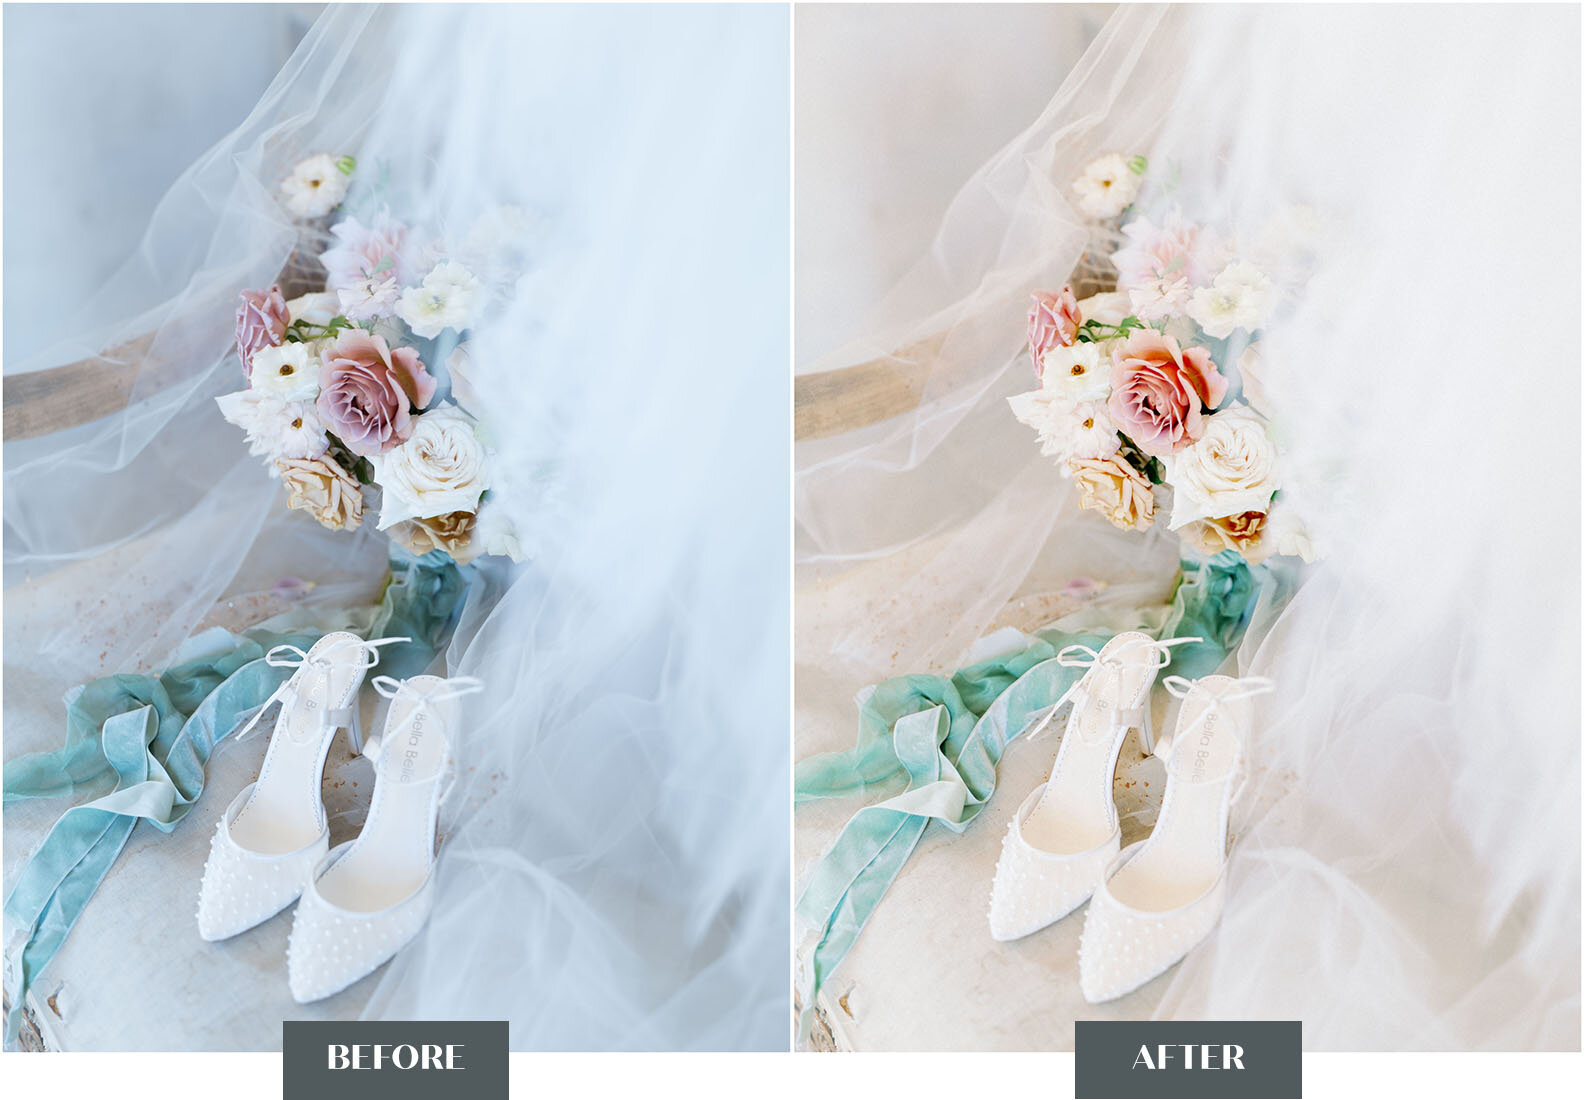 goodlight presets before after color pack 1 - 4.jpg